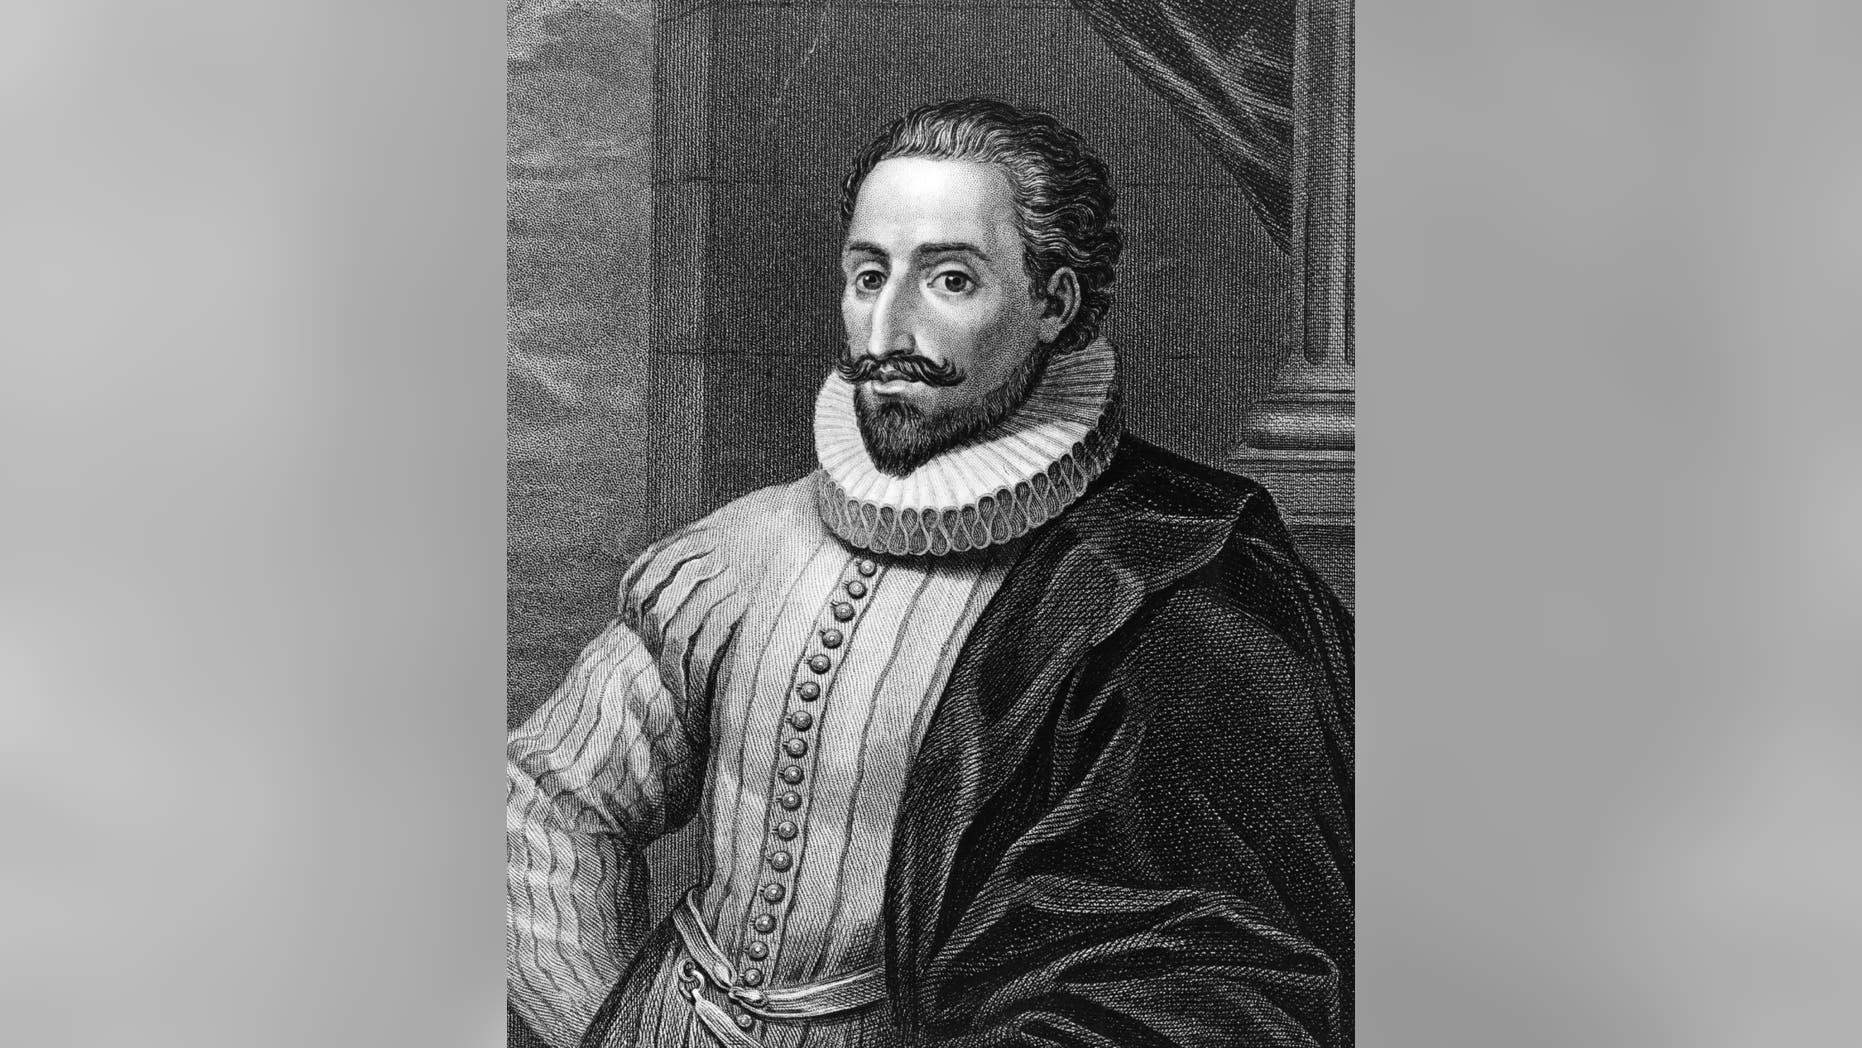 Spanish novelist Miguel de Cervantes (1547 - 1616), circa 1600. He was wounded at the battle of Lepanto in 1571,  captured and enslaved by pirates in Algeria in 1575. Once back in Spain, he began writing; 'Don Quixote' is considered his greatest work and was published in 1605 and 1615 (part II).   (Photo by Hulton Archive/Getty Images)